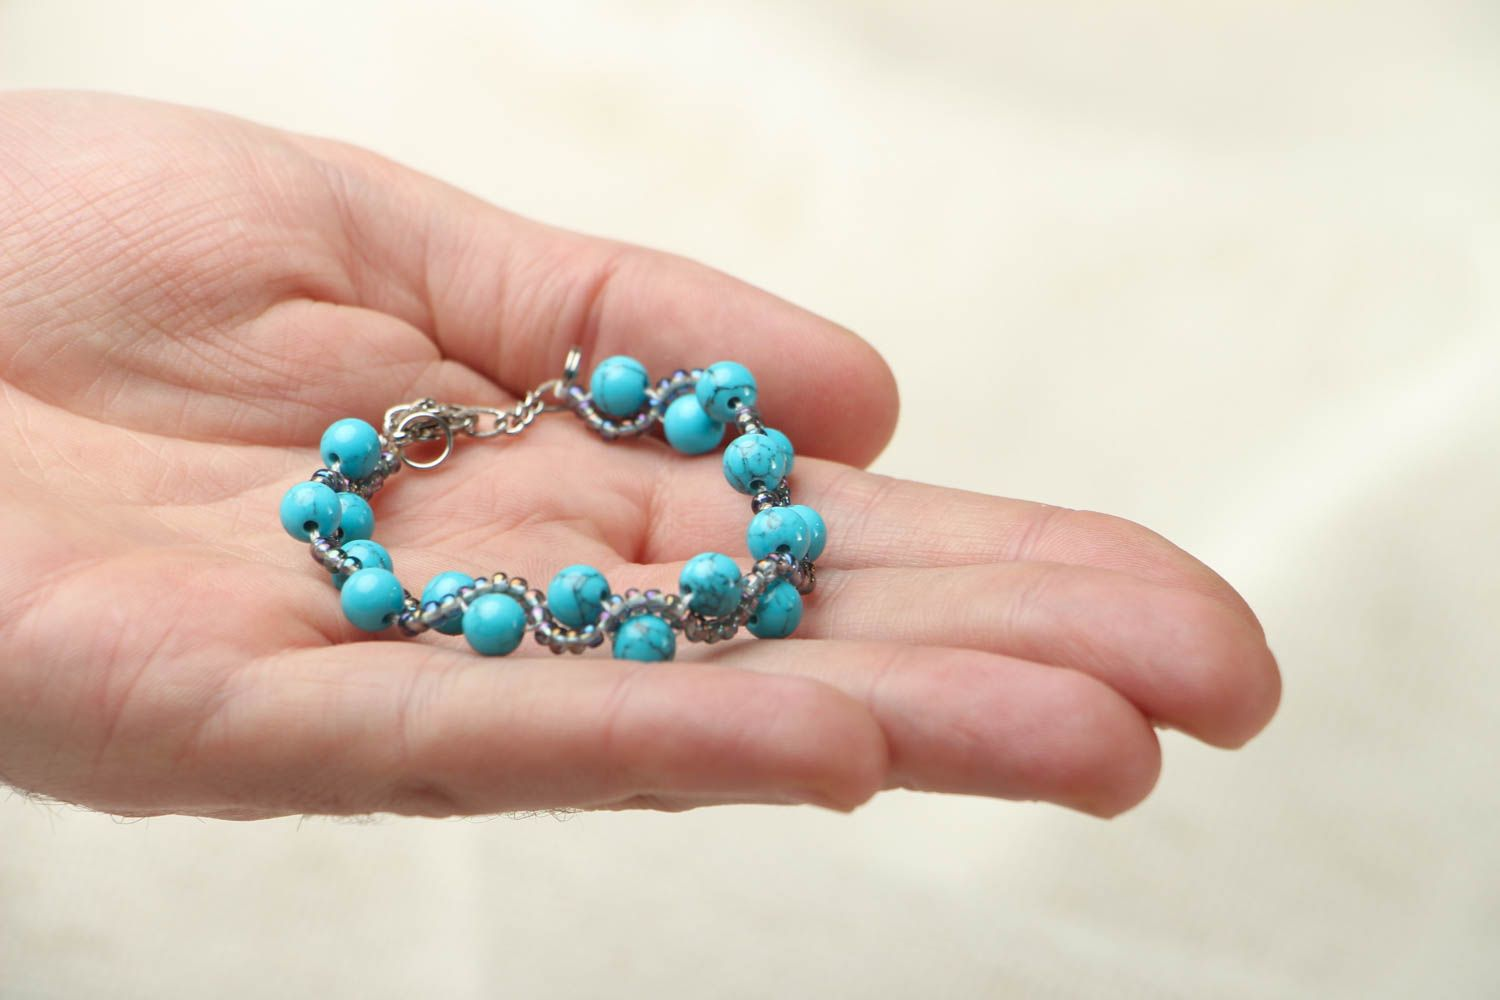 Bracelet with turquoise stone photo 3